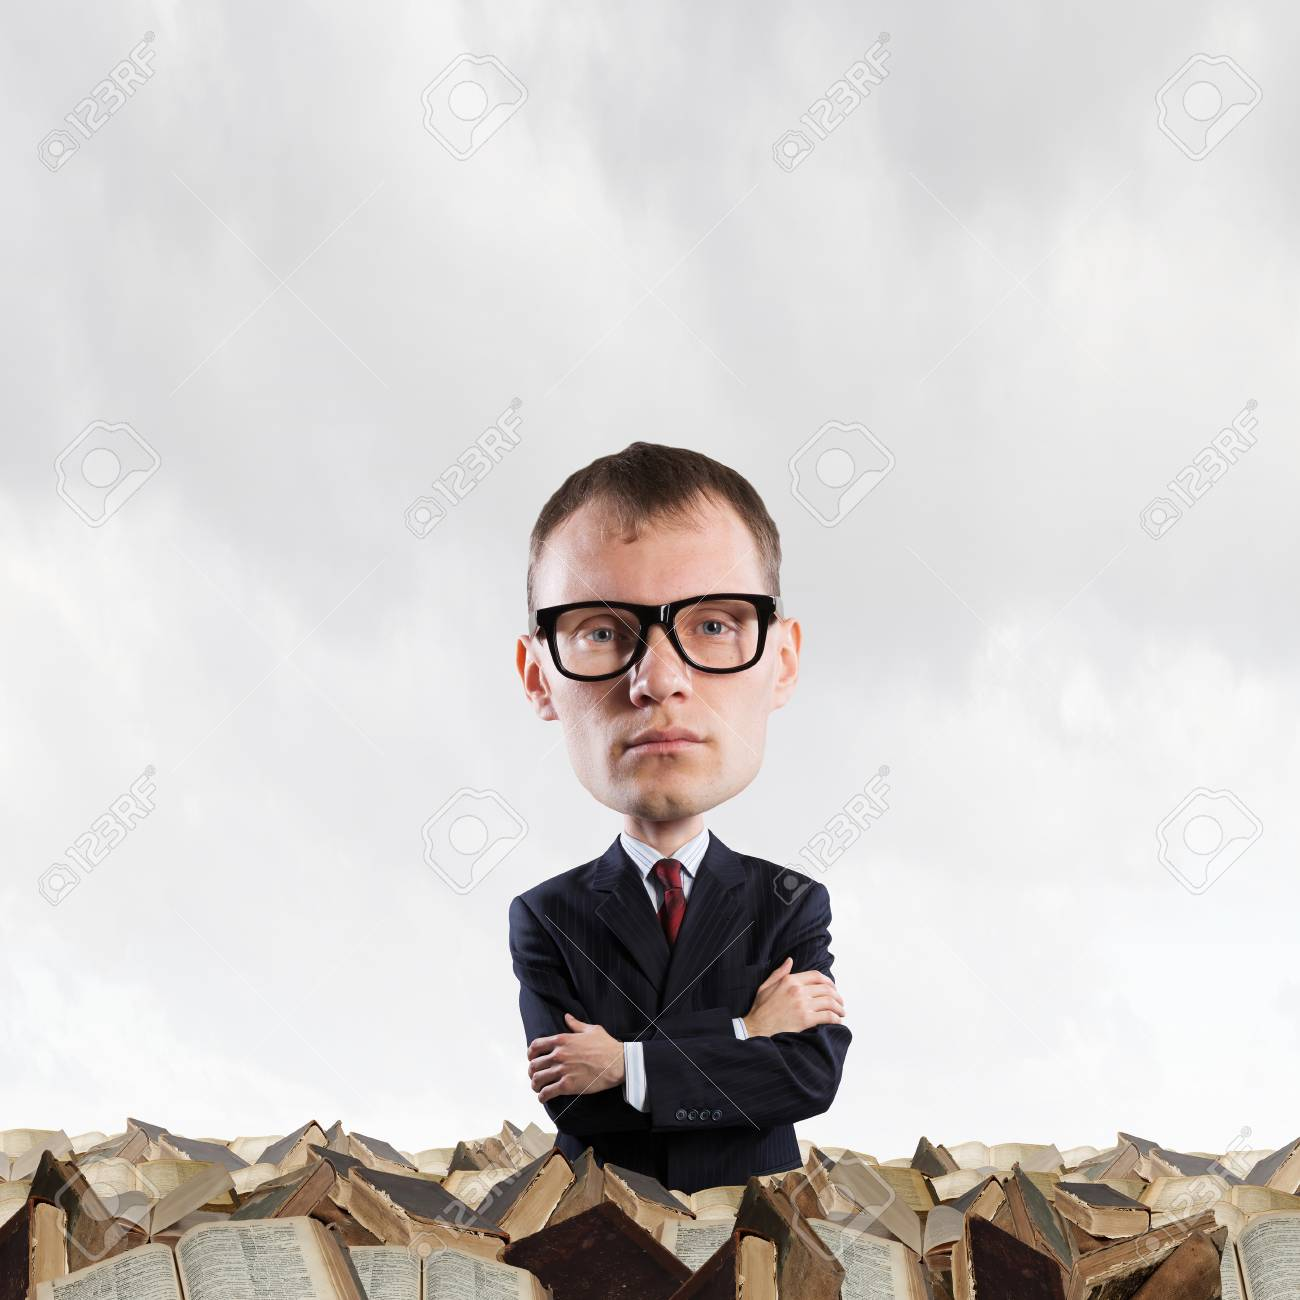 2ecee87e3a Stock Photo - Young funny man in glasses with big head